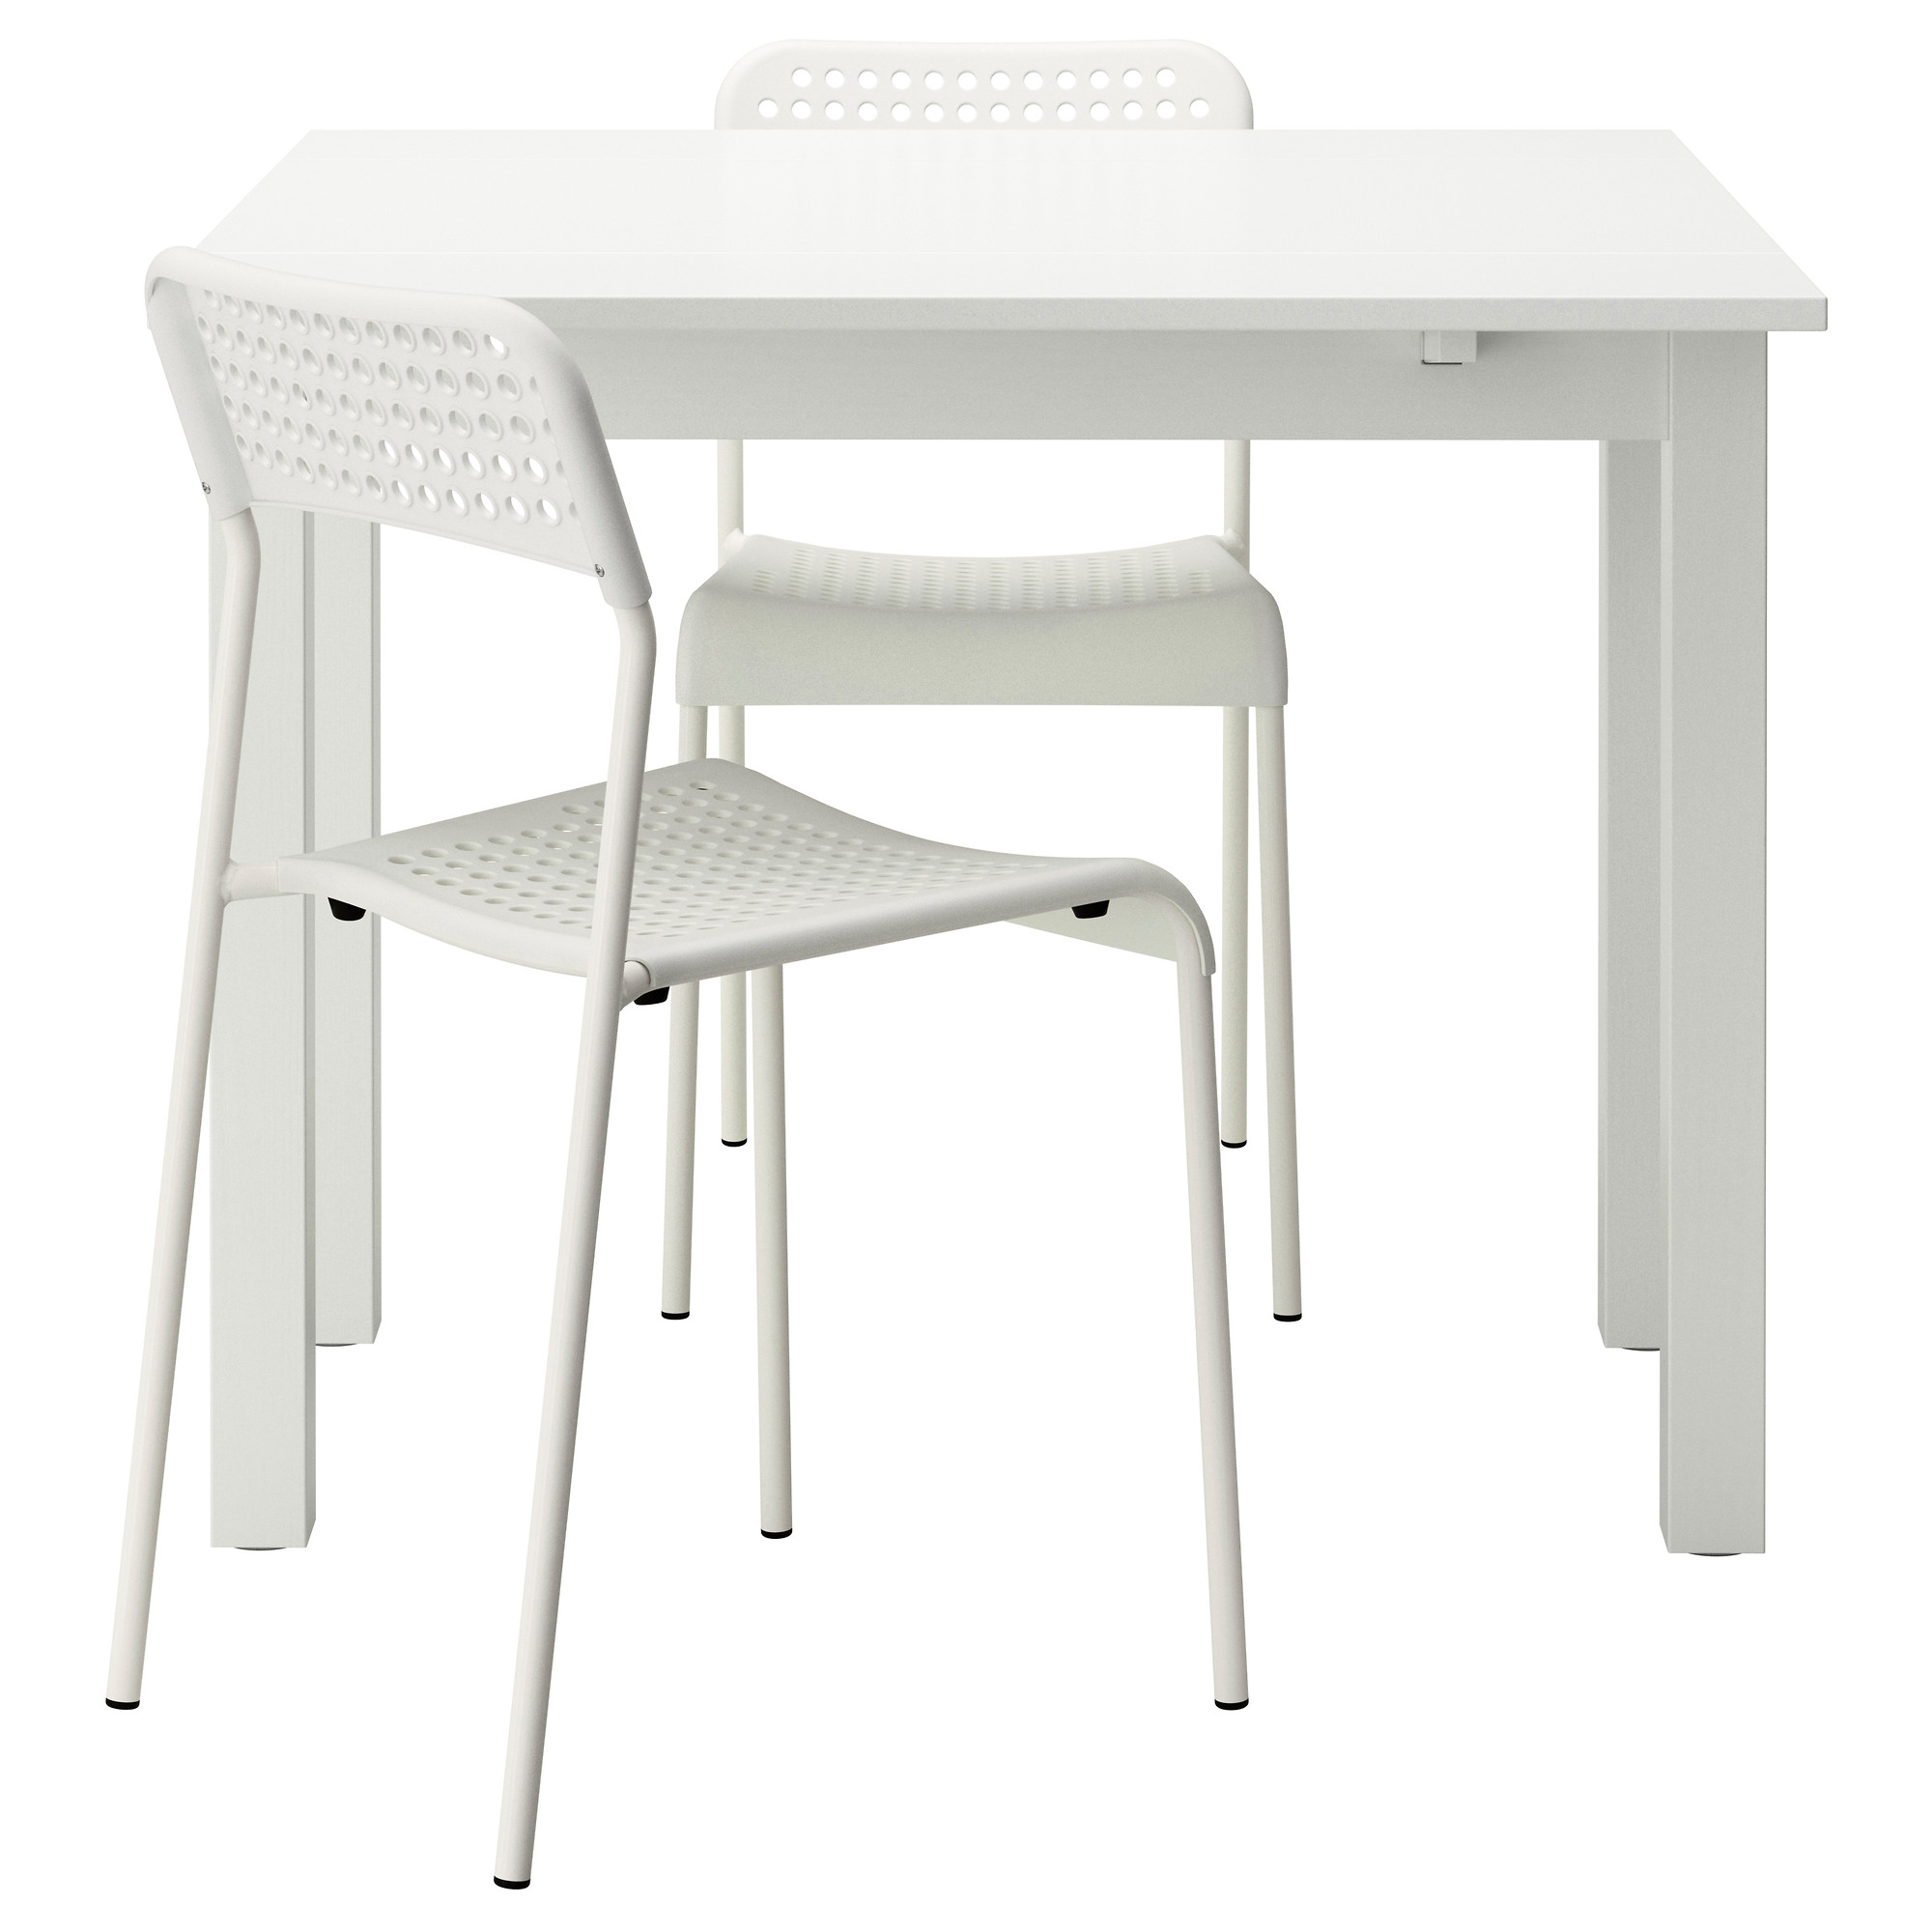 Table et chaise de cuisine ikea table chaise cuisine for Base de table ikea